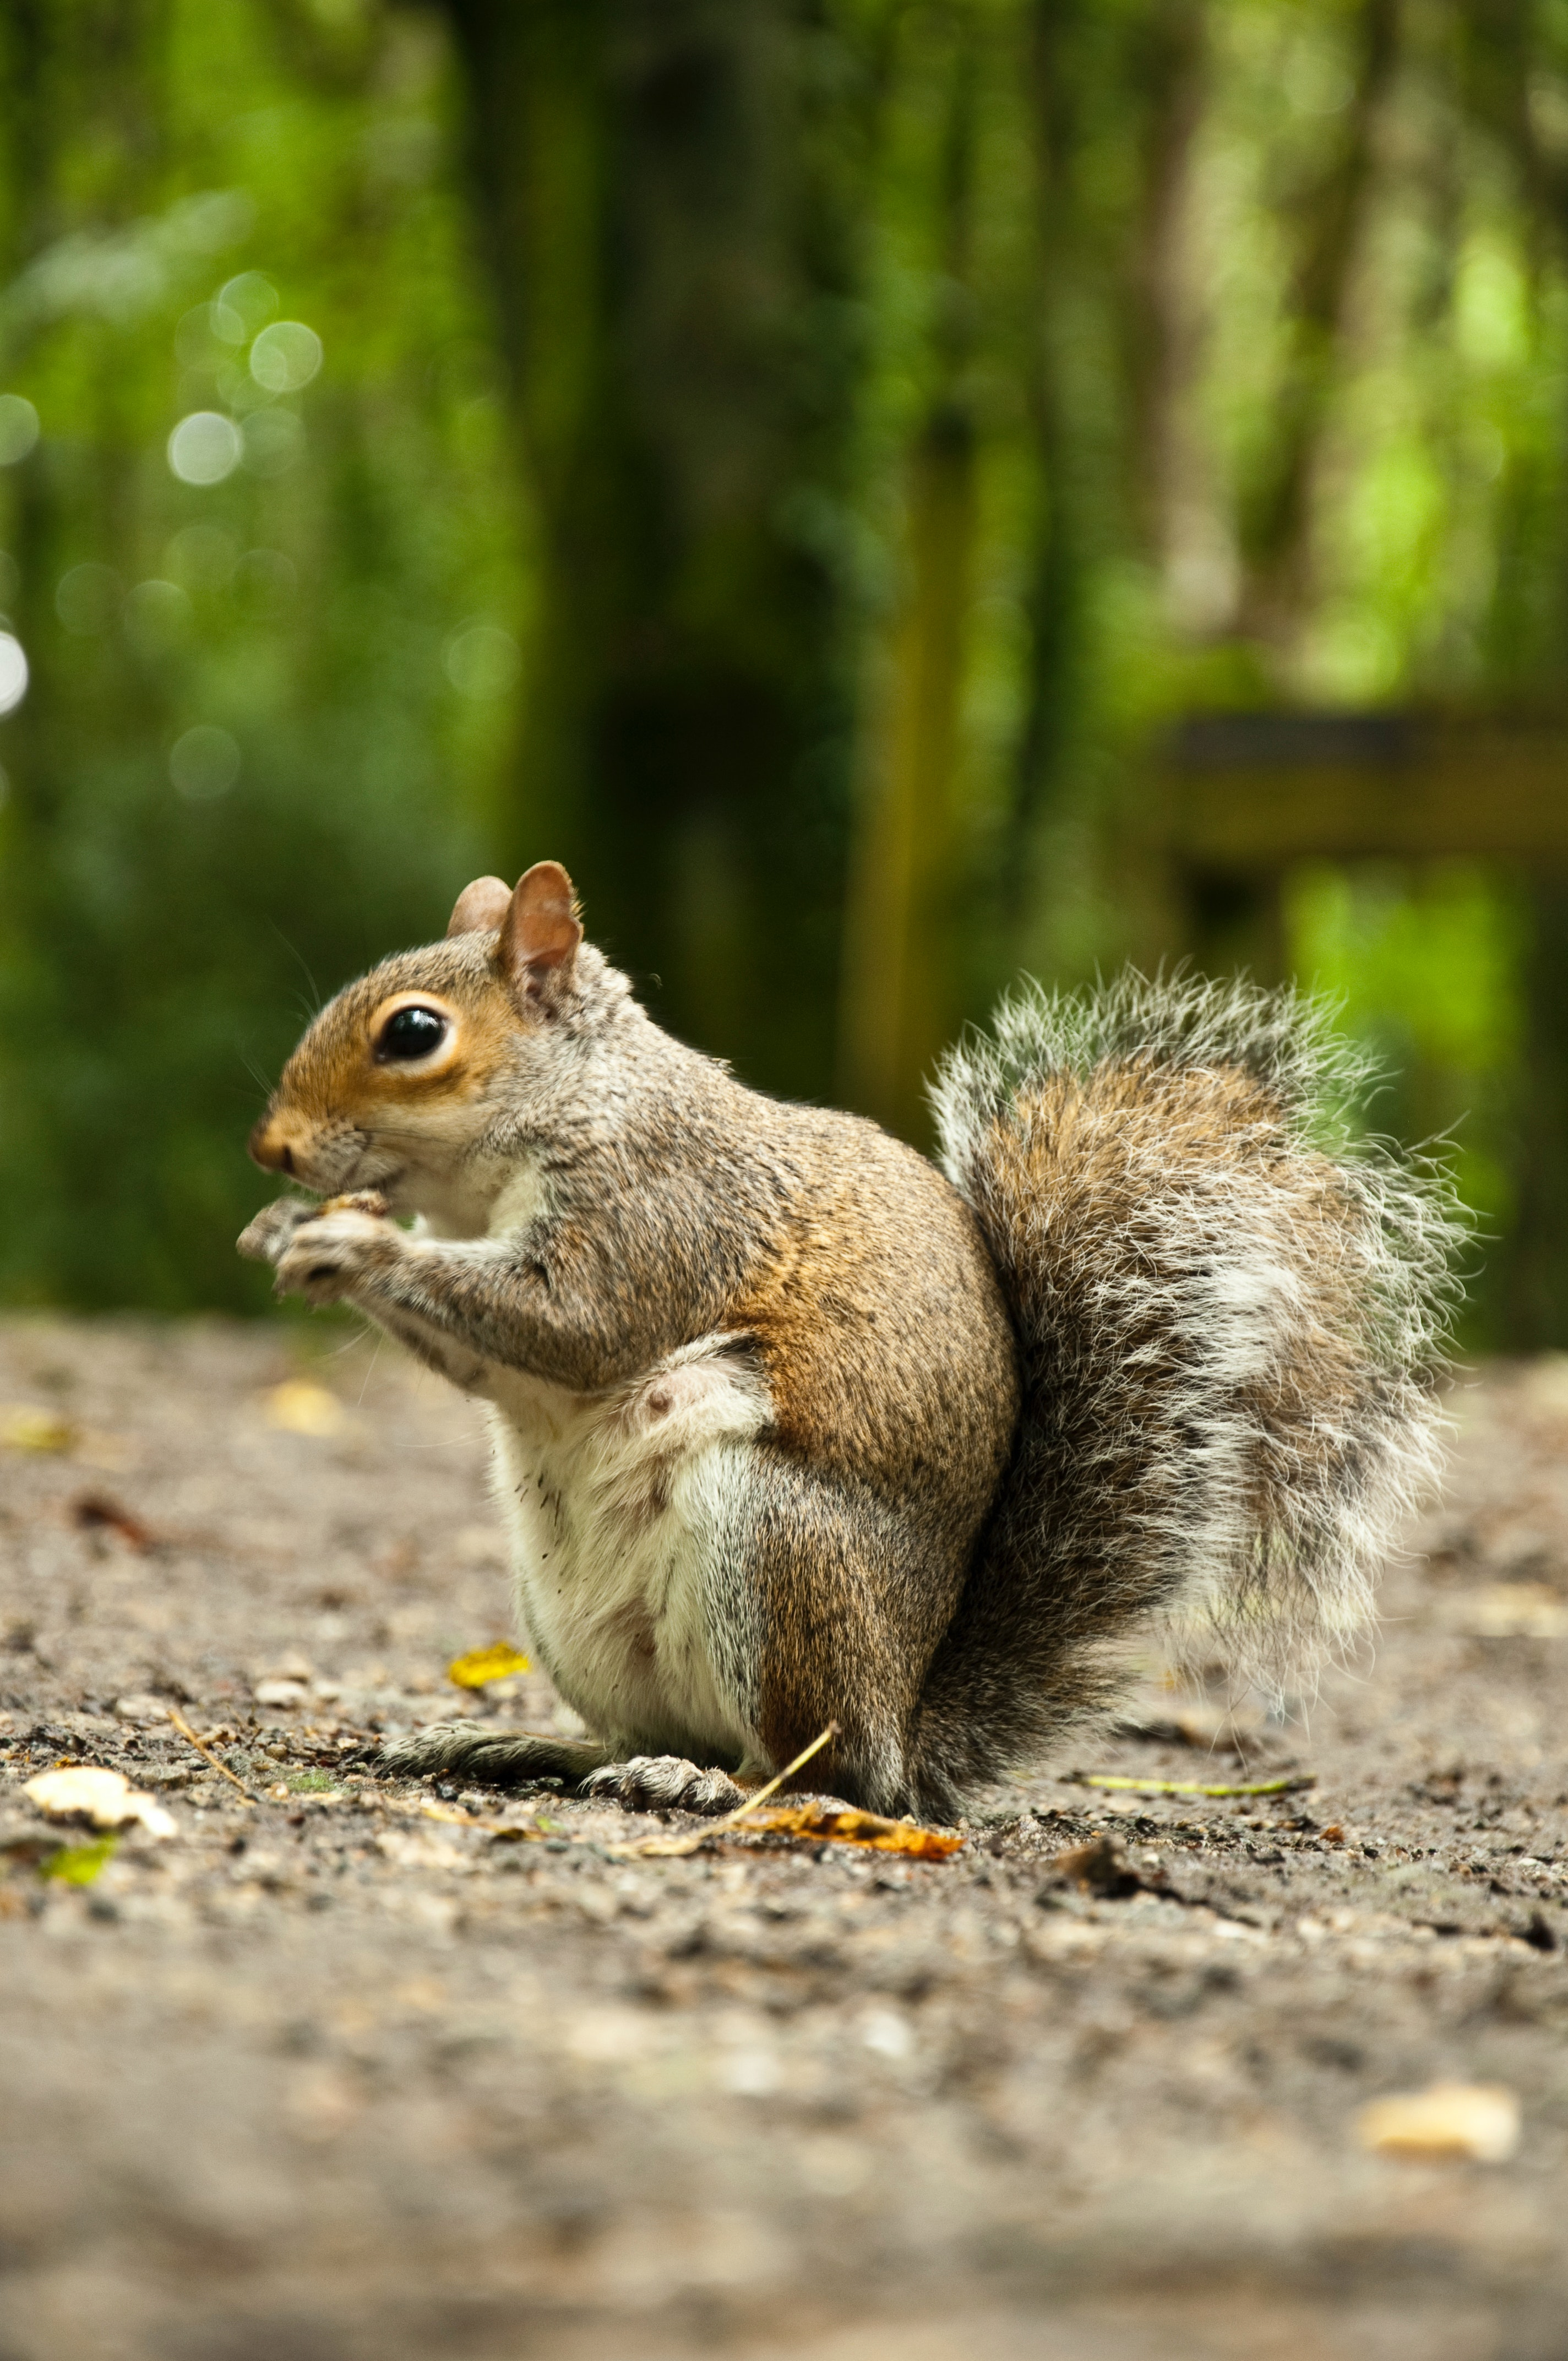 Two Squirrels On Tree Trunk  C2 B7 Free Stock Photo